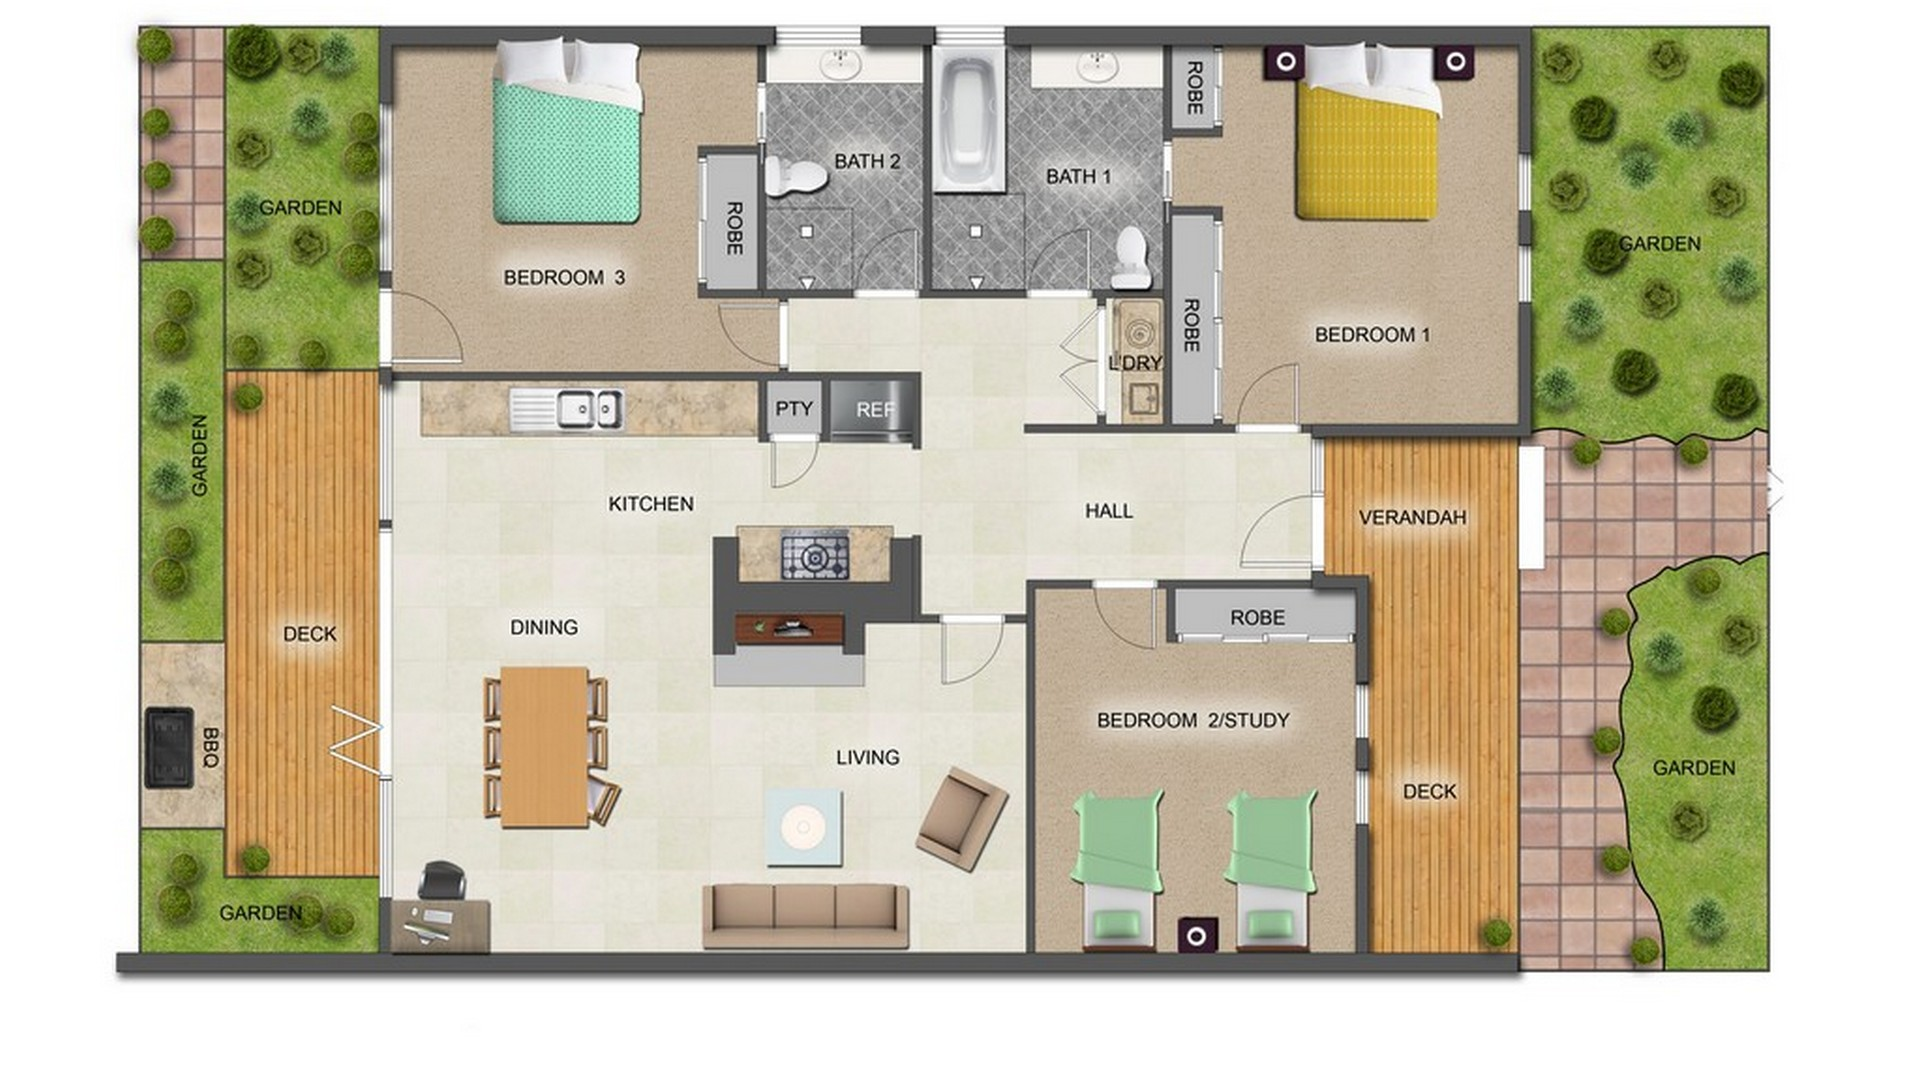 Floor plan of The Trenerry, Abbotsford, Melbourne